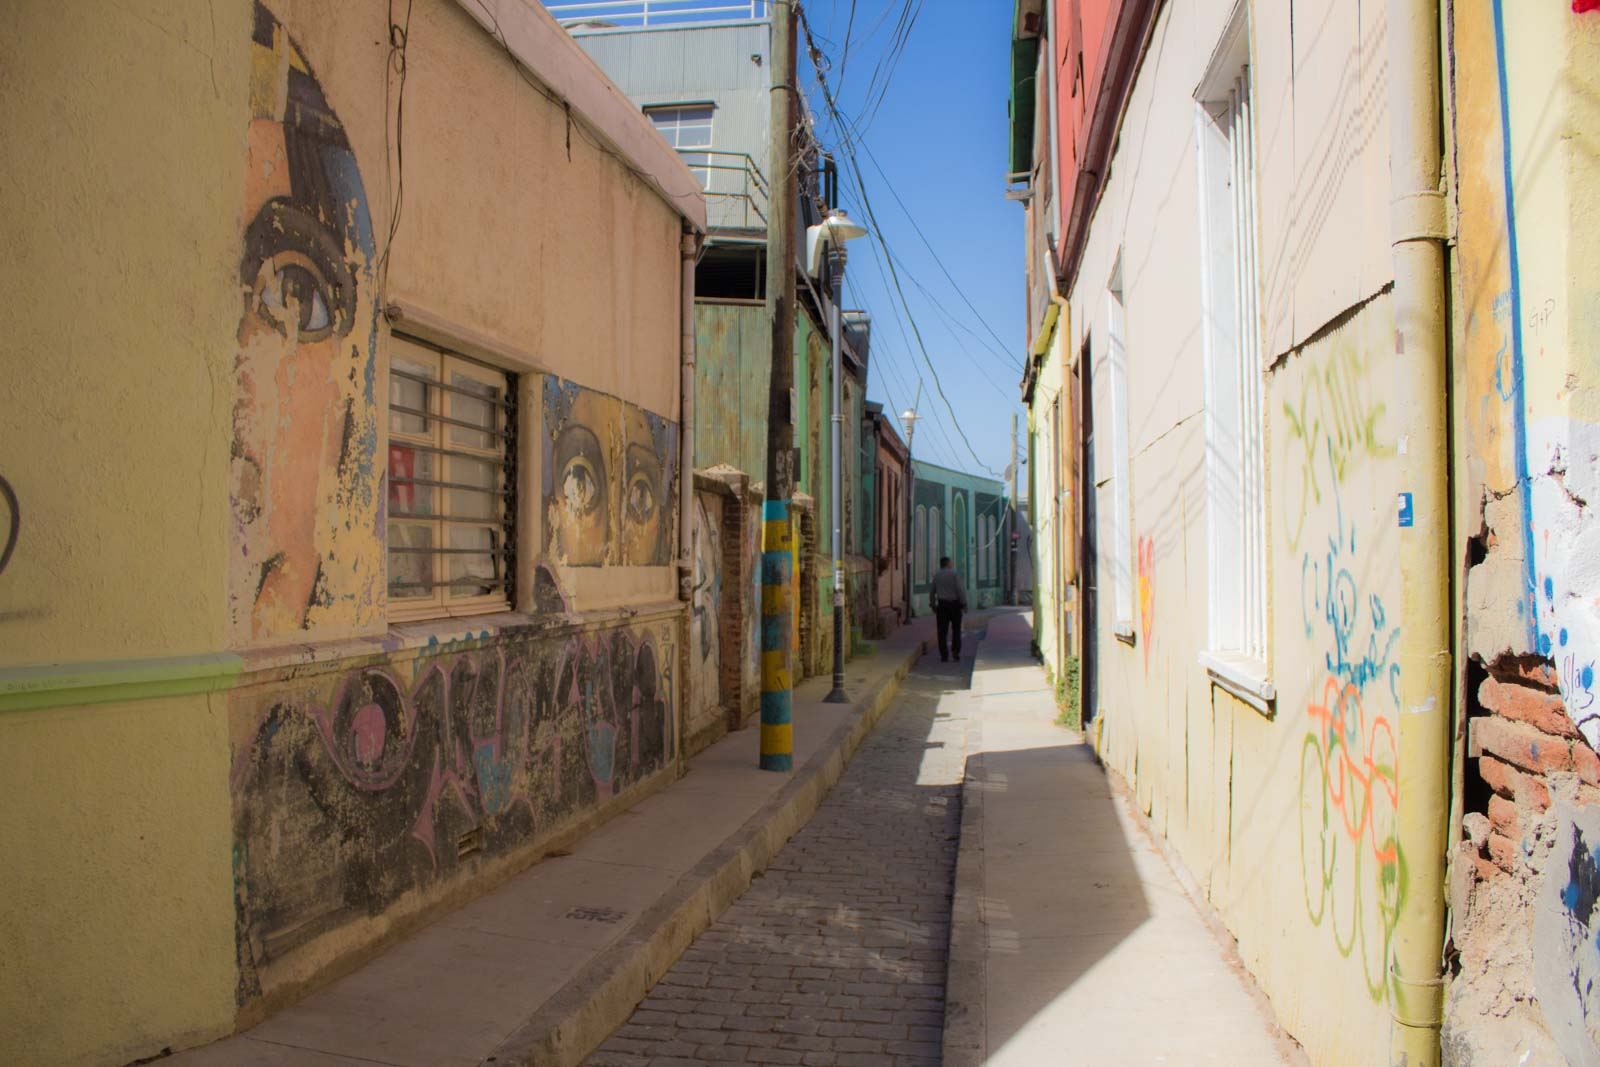 Visiting Valparaiso in Chile